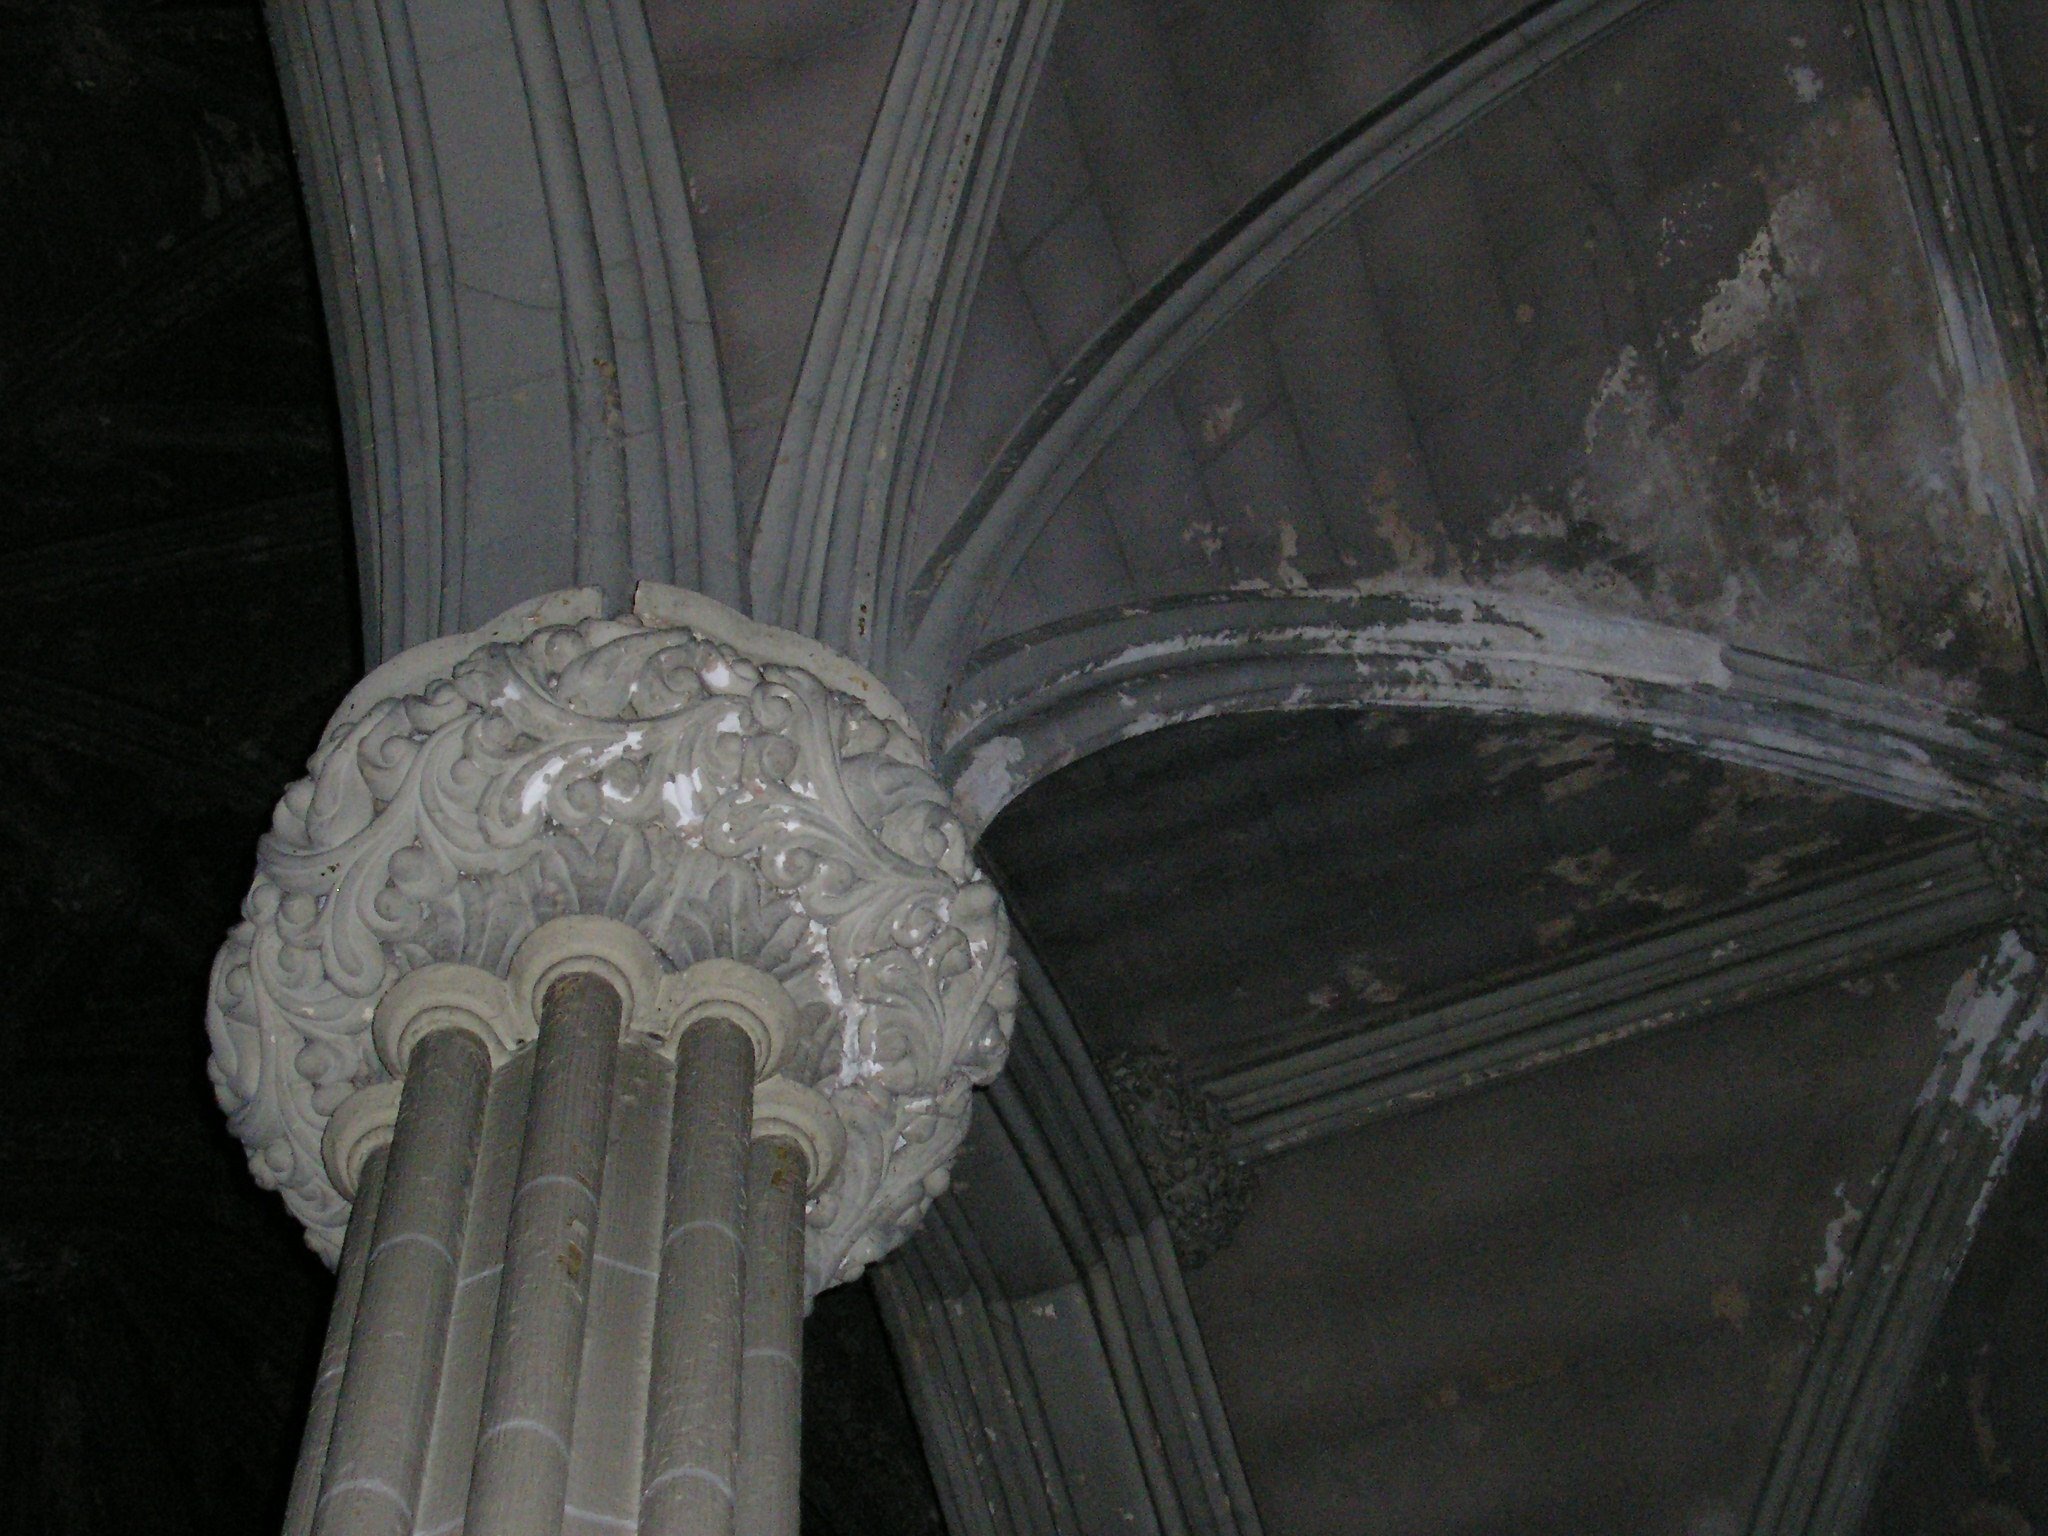 The columns of the church were topped with elaborate ornamentation in this 2007 photo.